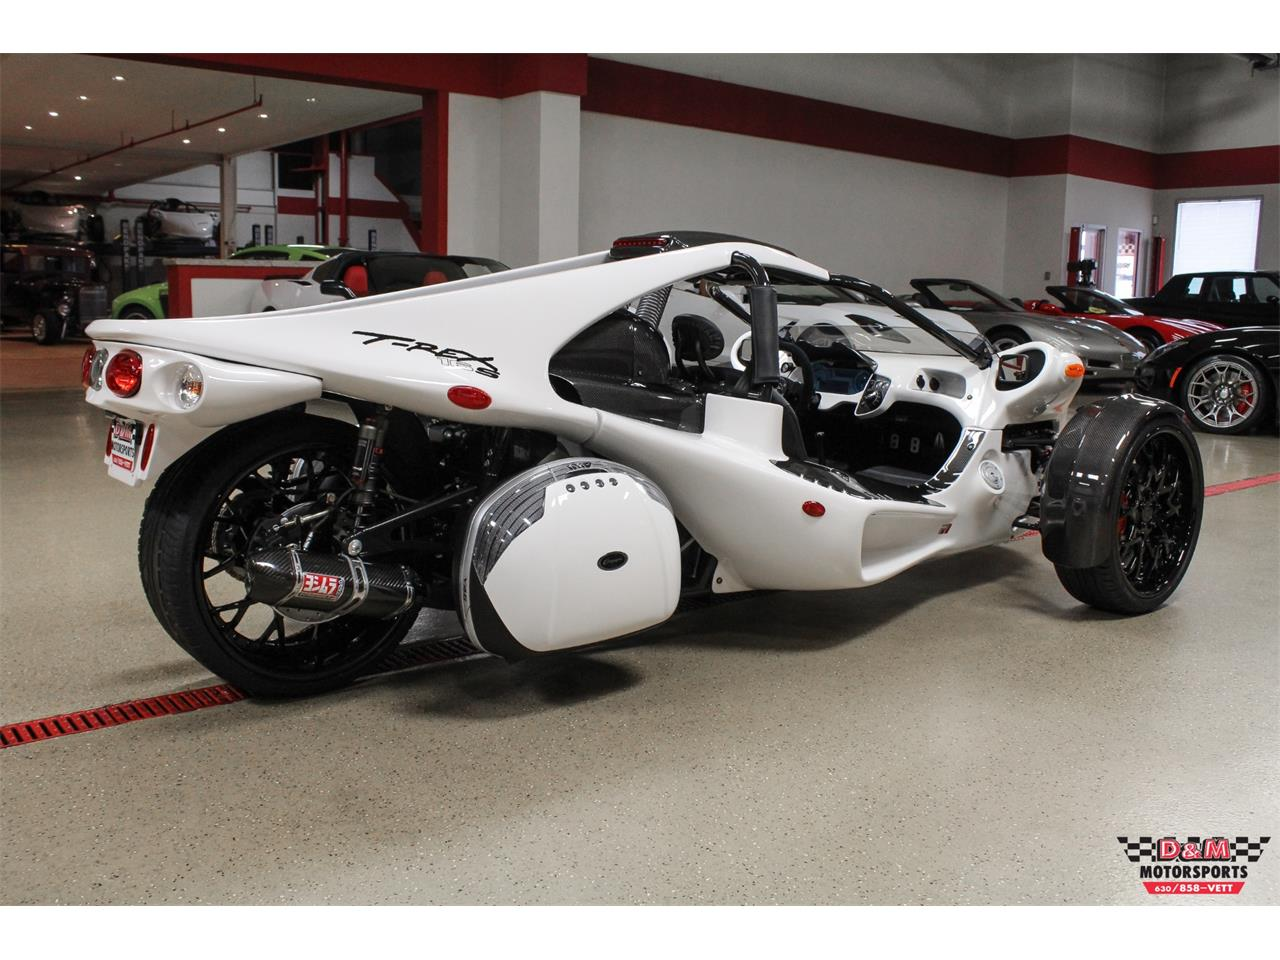 Large Picture of 2018 Campagna T-Rex located in Glen Ellyn Illinois Auction Vehicle Offered by D & M Motorsports - PCCJ